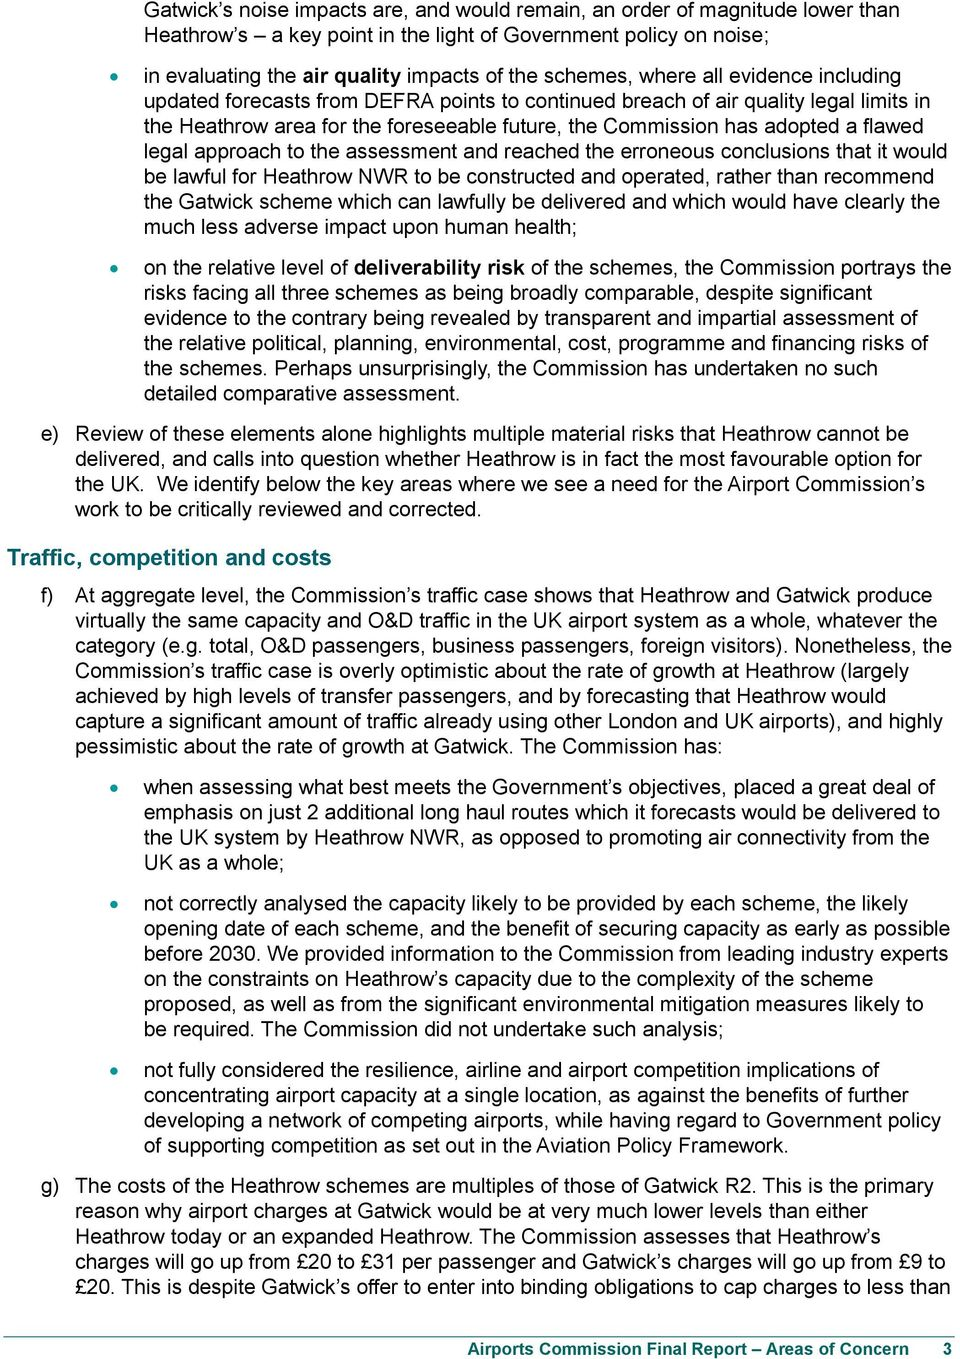 flawed legal approach to the assessment and reached the erroneous conclusions that it would be lawful for Heathrow NWR to be constructed and operated, rather than recommend the Gatwick scheme which